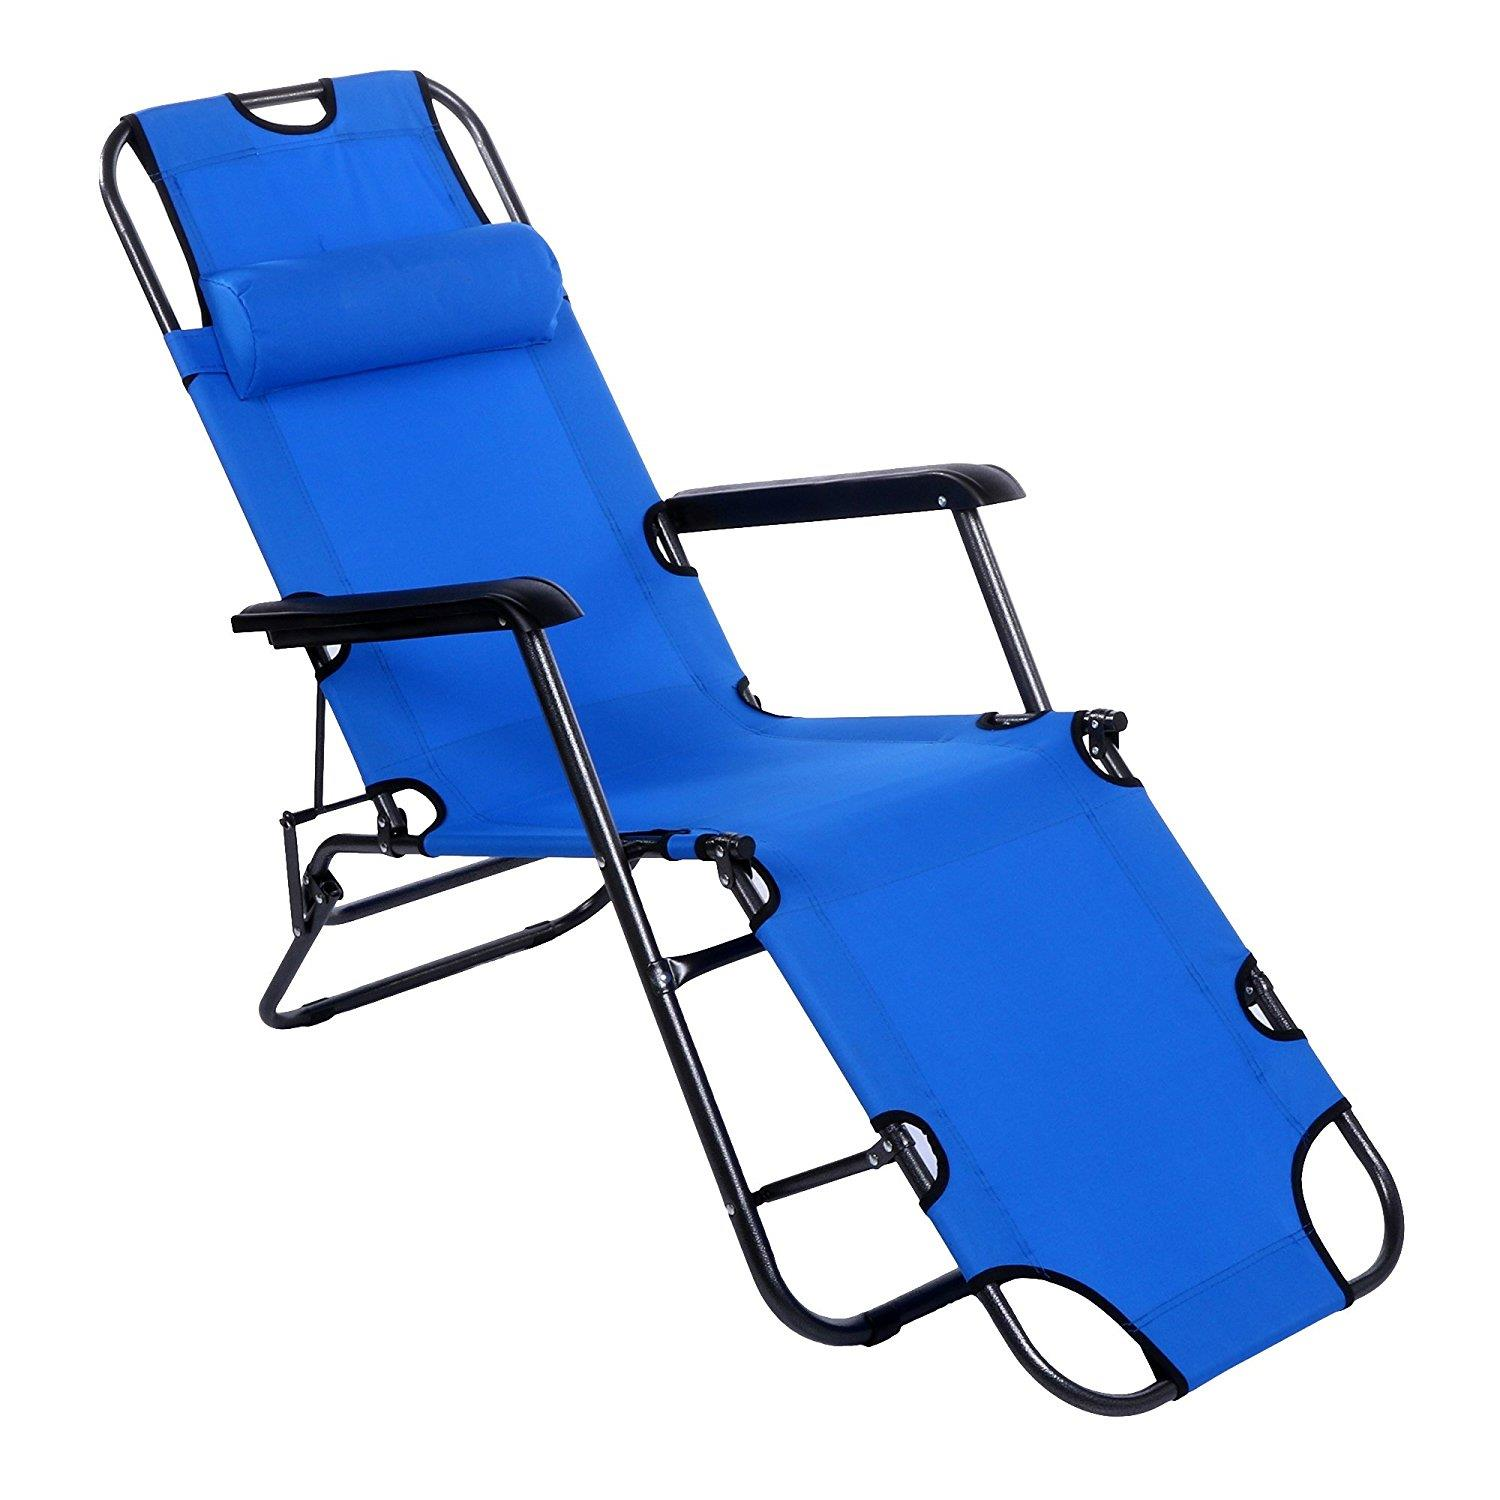 Ktaxon Outdoor Folding Lounge Chaise Portable Beach Recliner Patio on folding chaise lawn chairs, camping frame, camping folding chairs, rei camping lounge chairs, camping hammock chairs, reclining camping chairs, camping rocker chairs, beach camping chairs, camping picnic tables, camping board games,